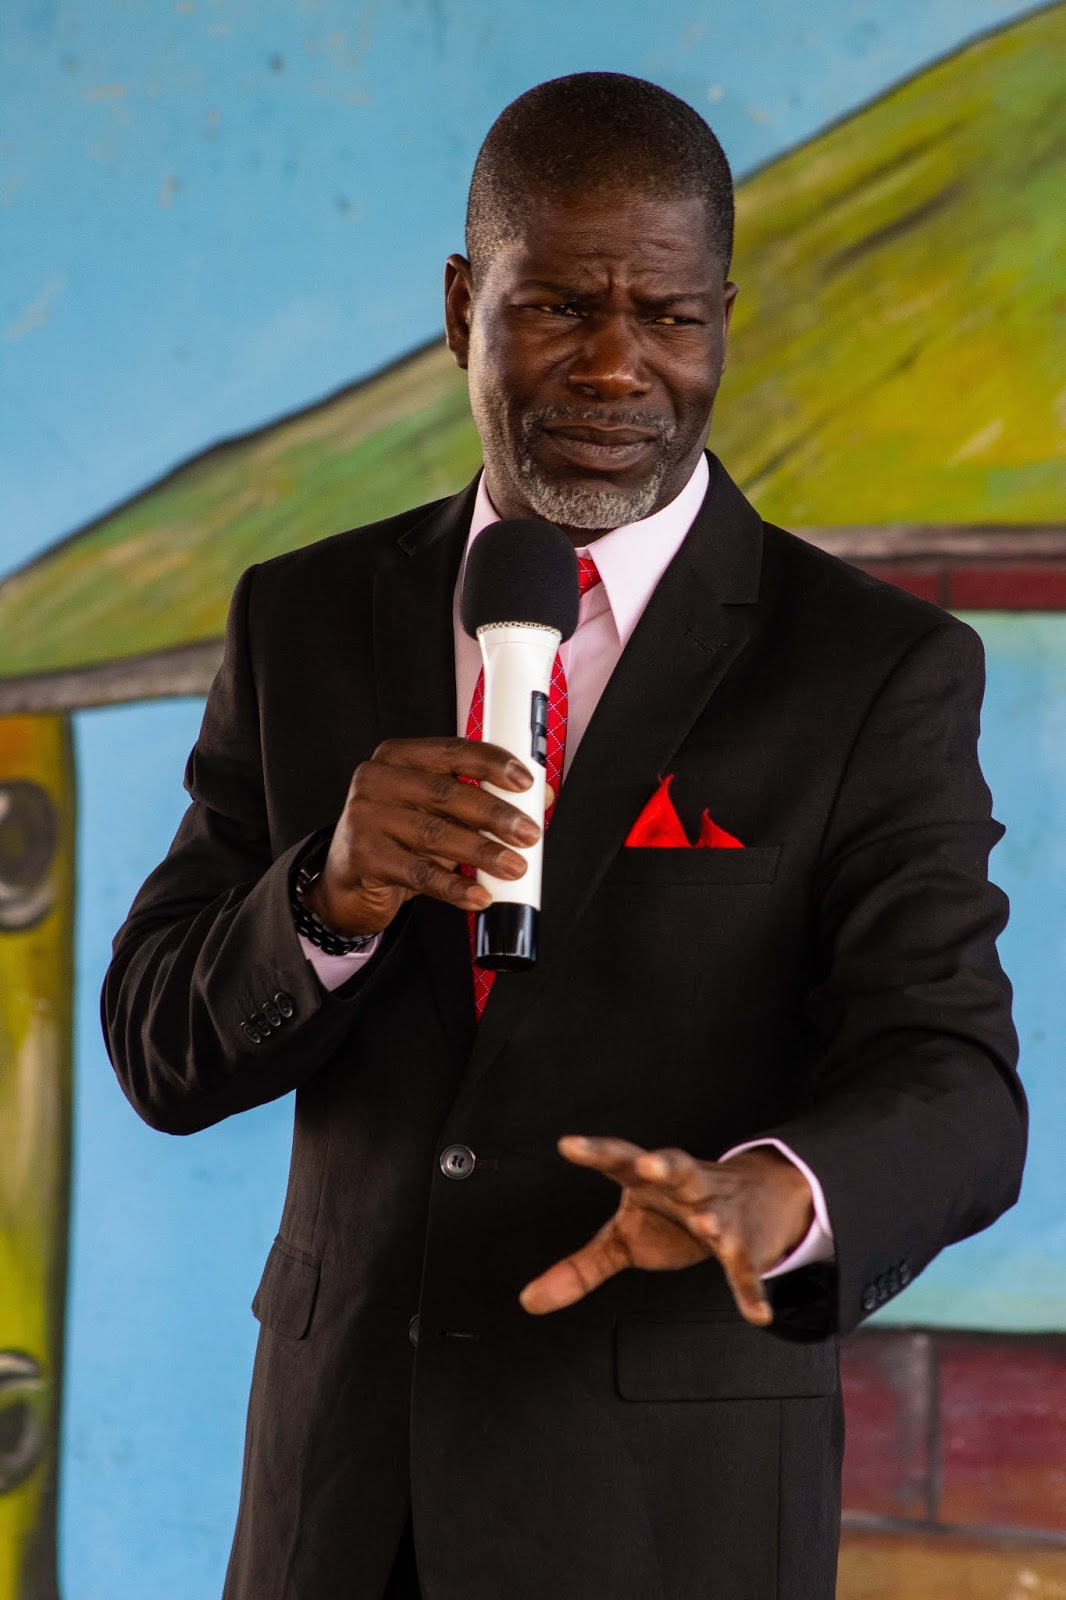 Bishop Nelson Nzvimbo Ministers At Tiyambuke